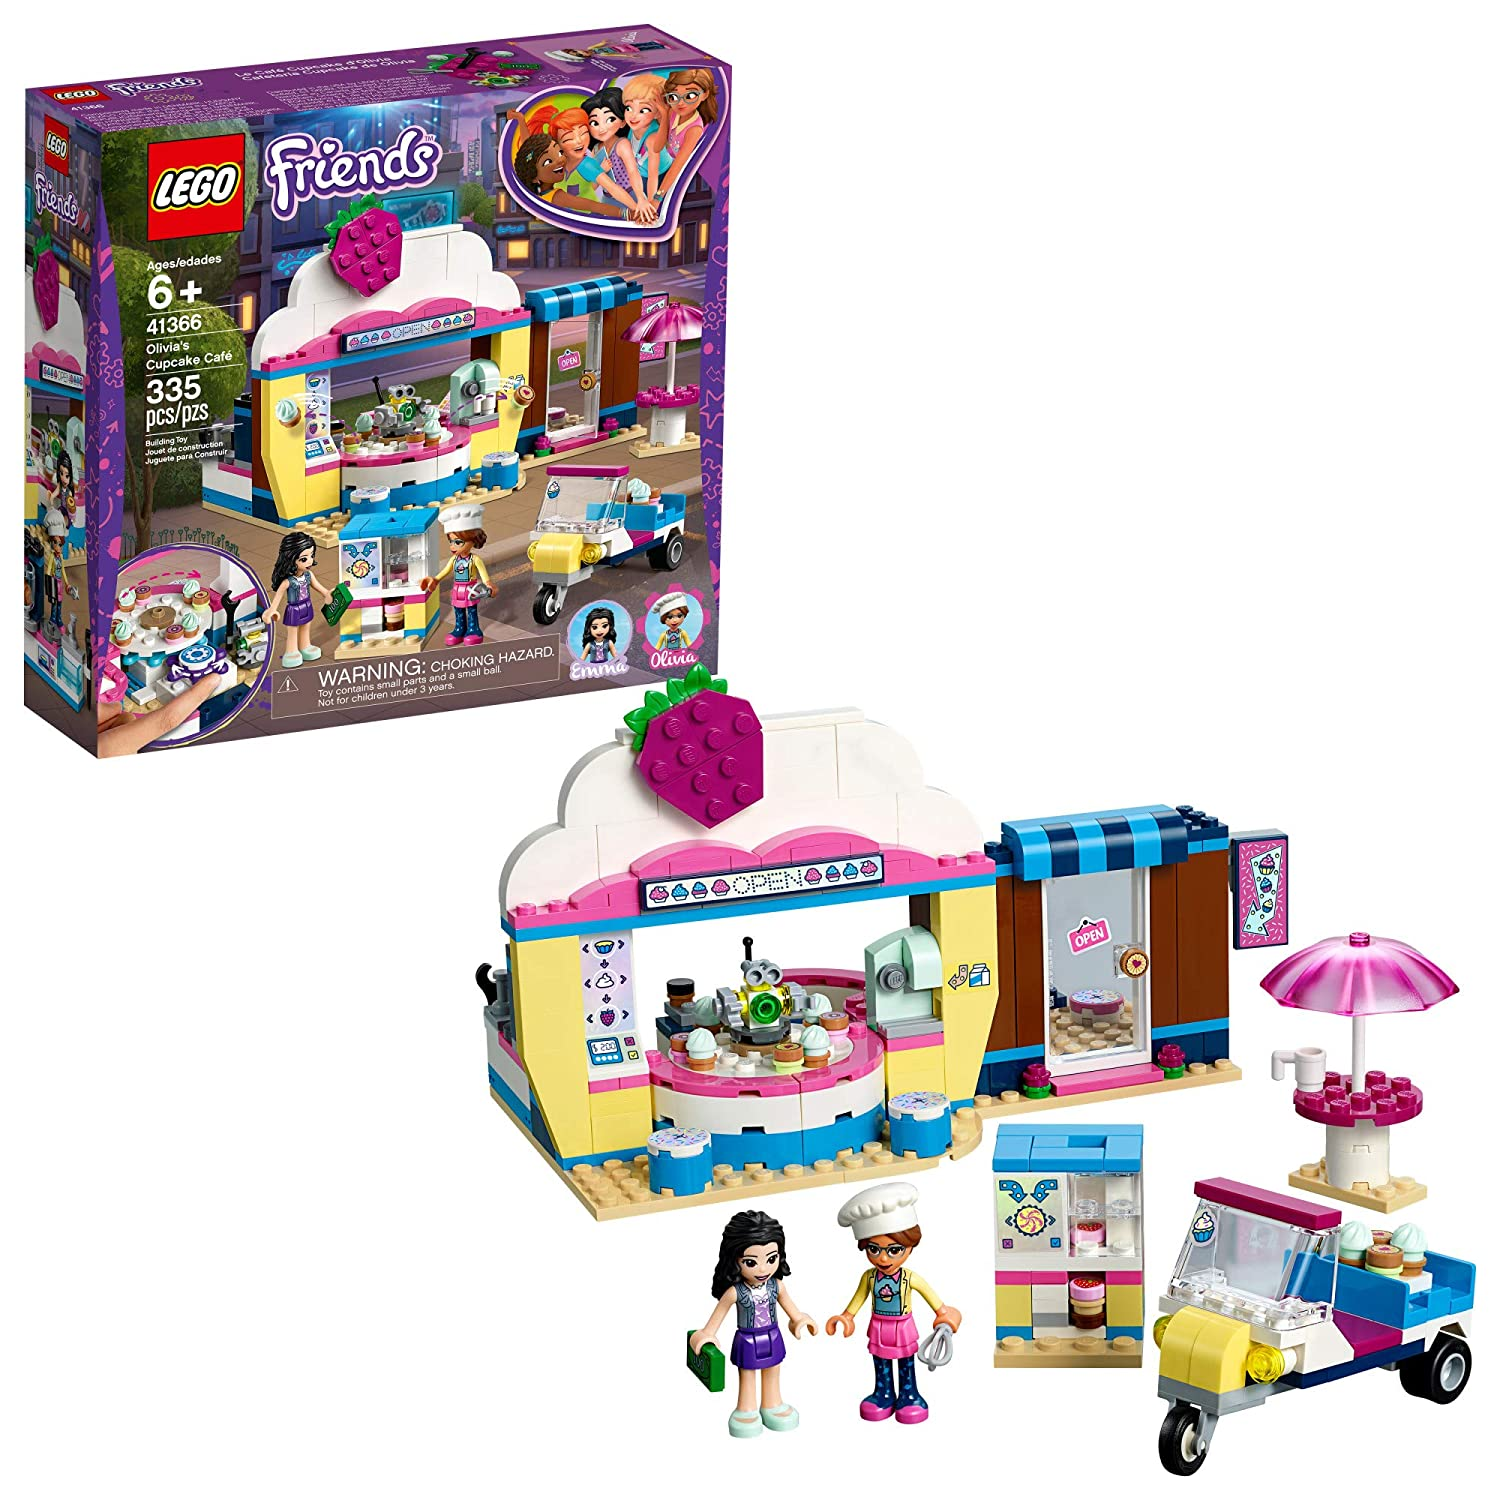 LEGO Friends Olivia's Cupcake Café 41366 Building Kit , New 2019 (335 Piece)